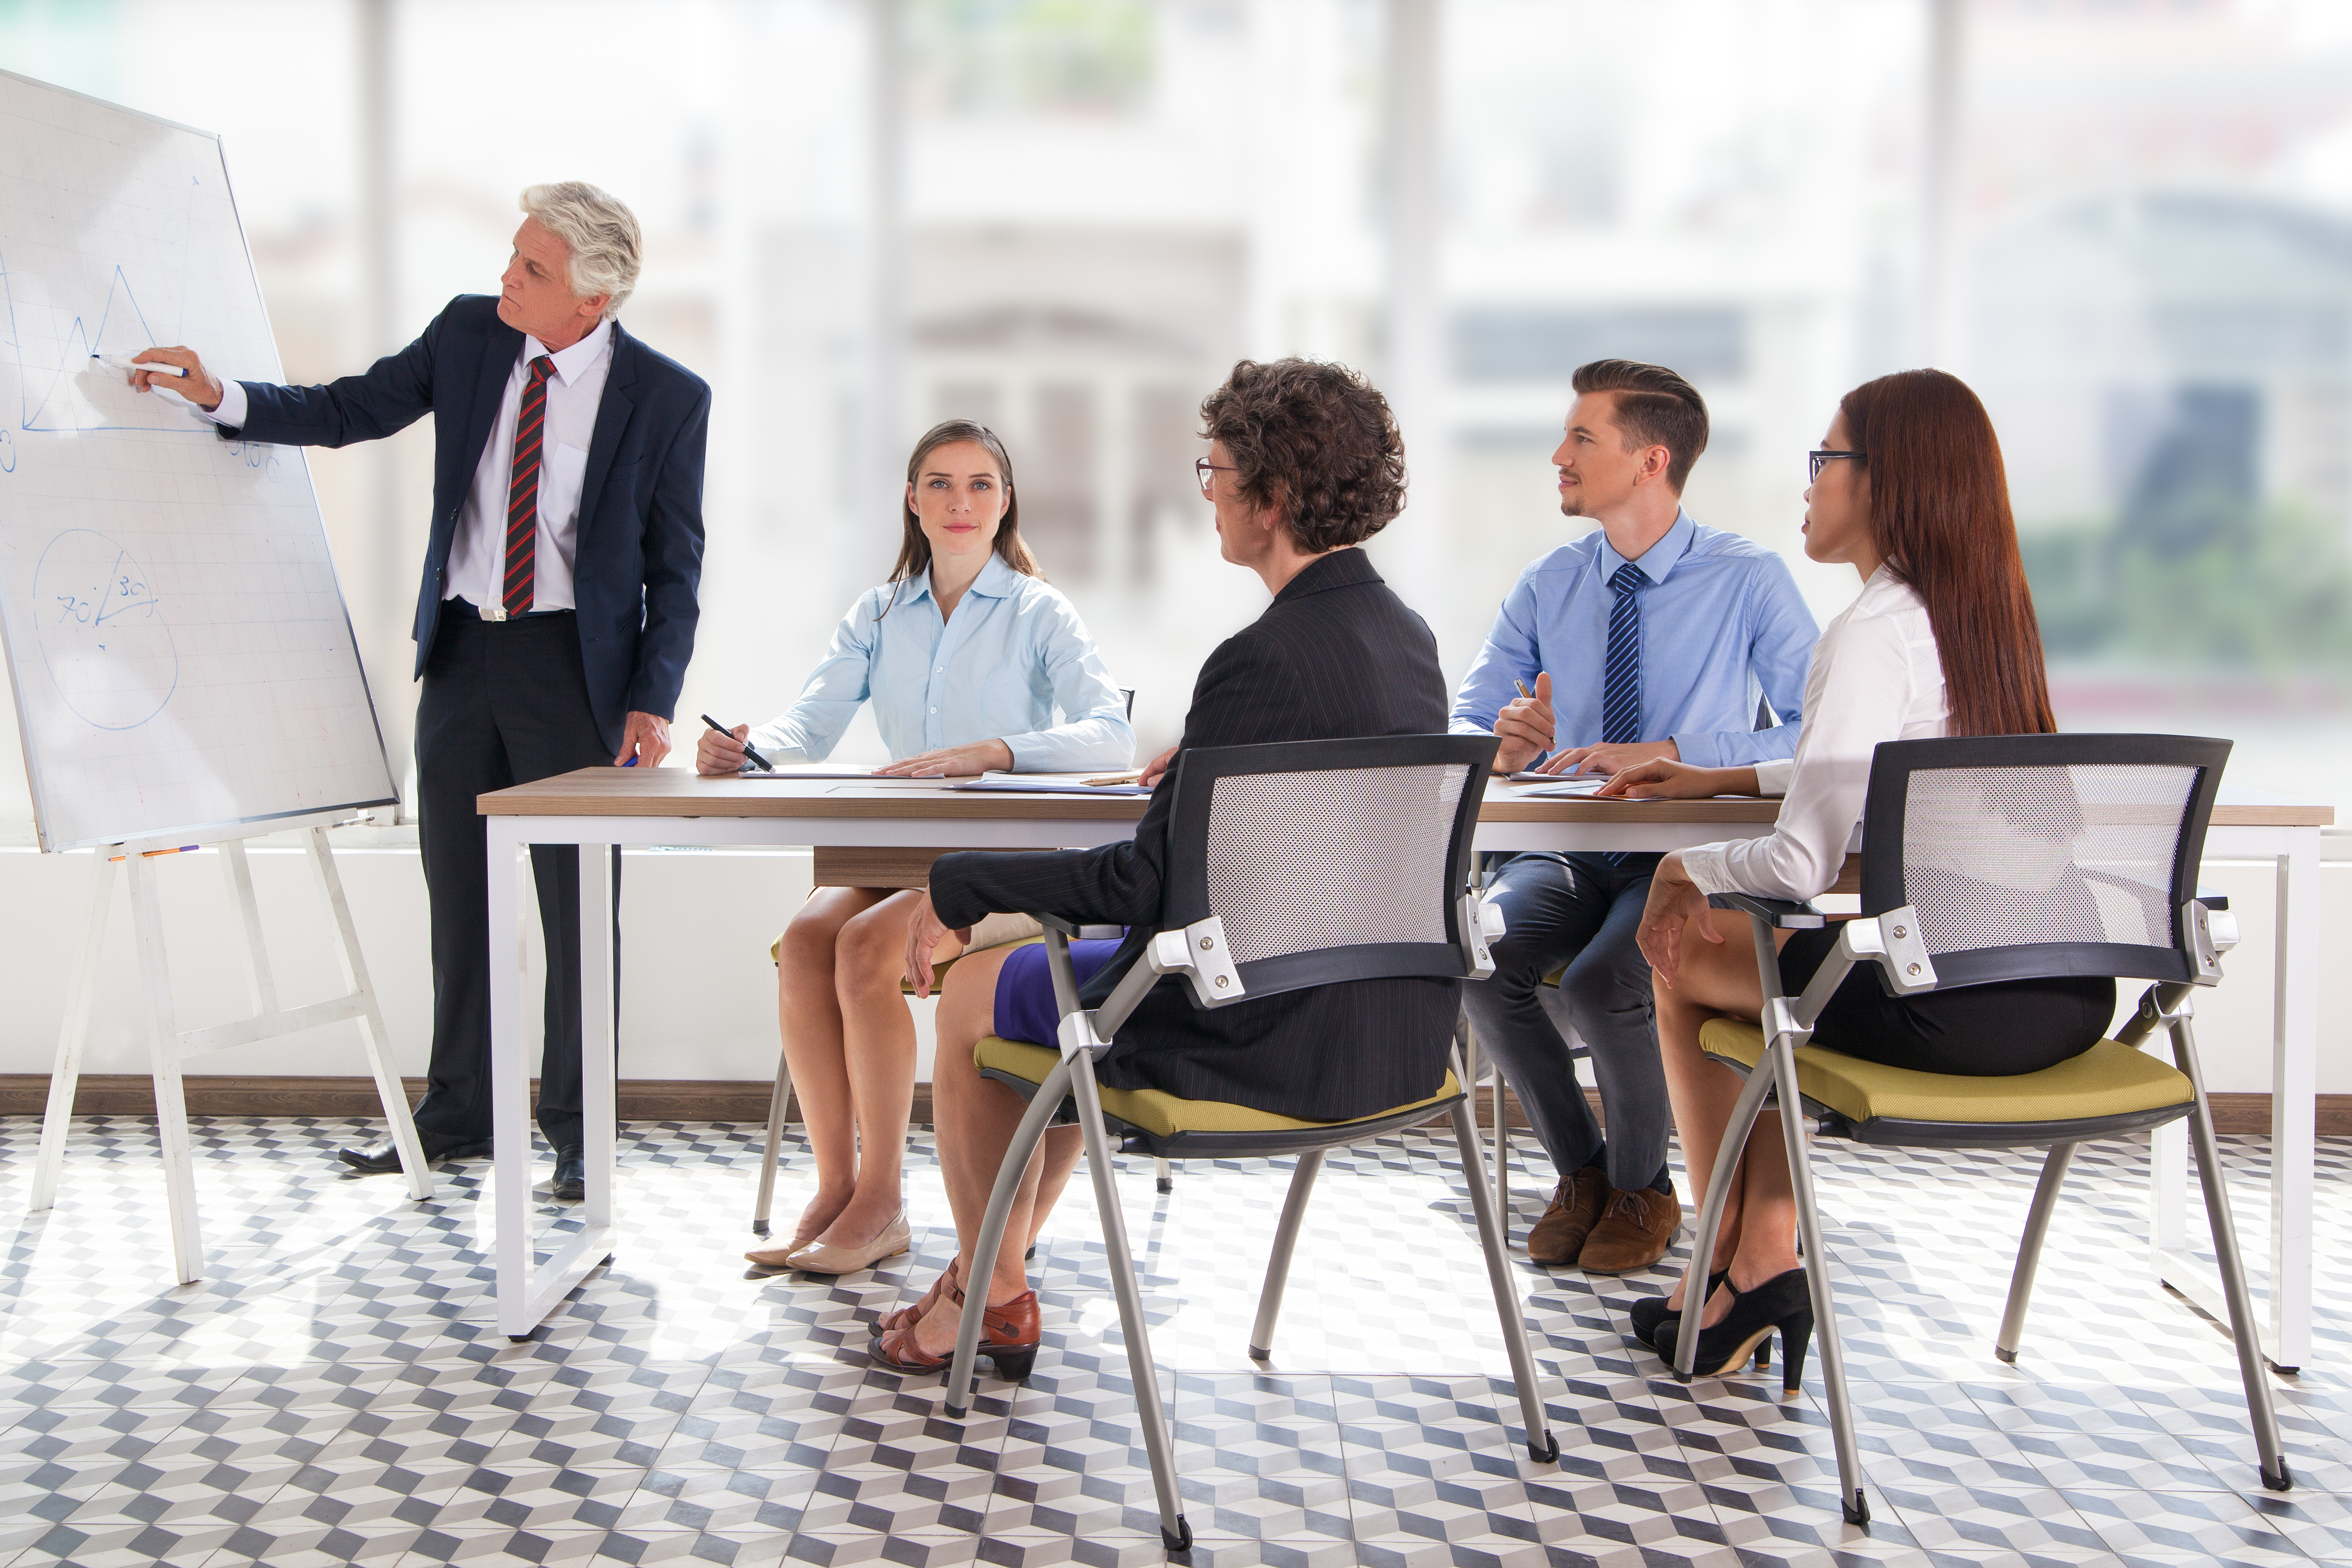 Senior Executives: facing changes at work and Covid-19, stay agile!